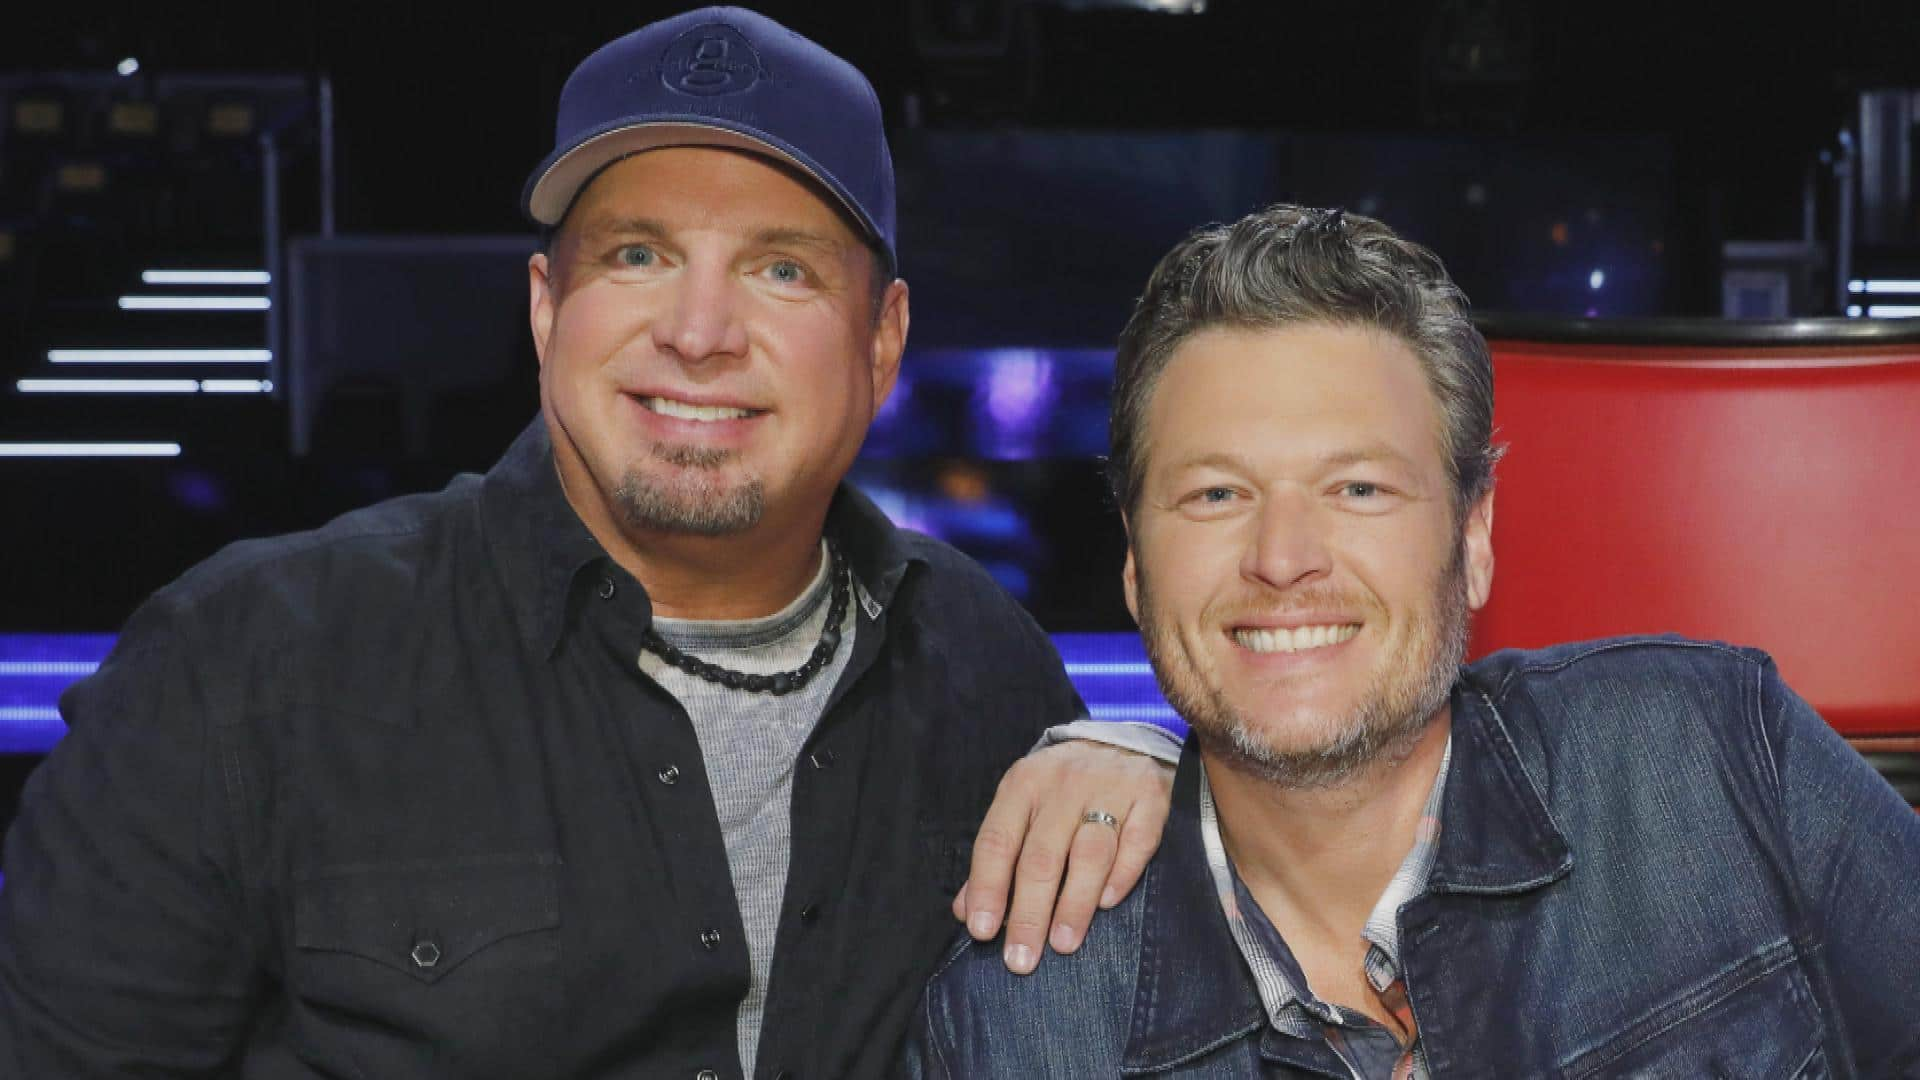 Blake Shelton said yes to 'Dive Bar' without ever hearing it … because duh